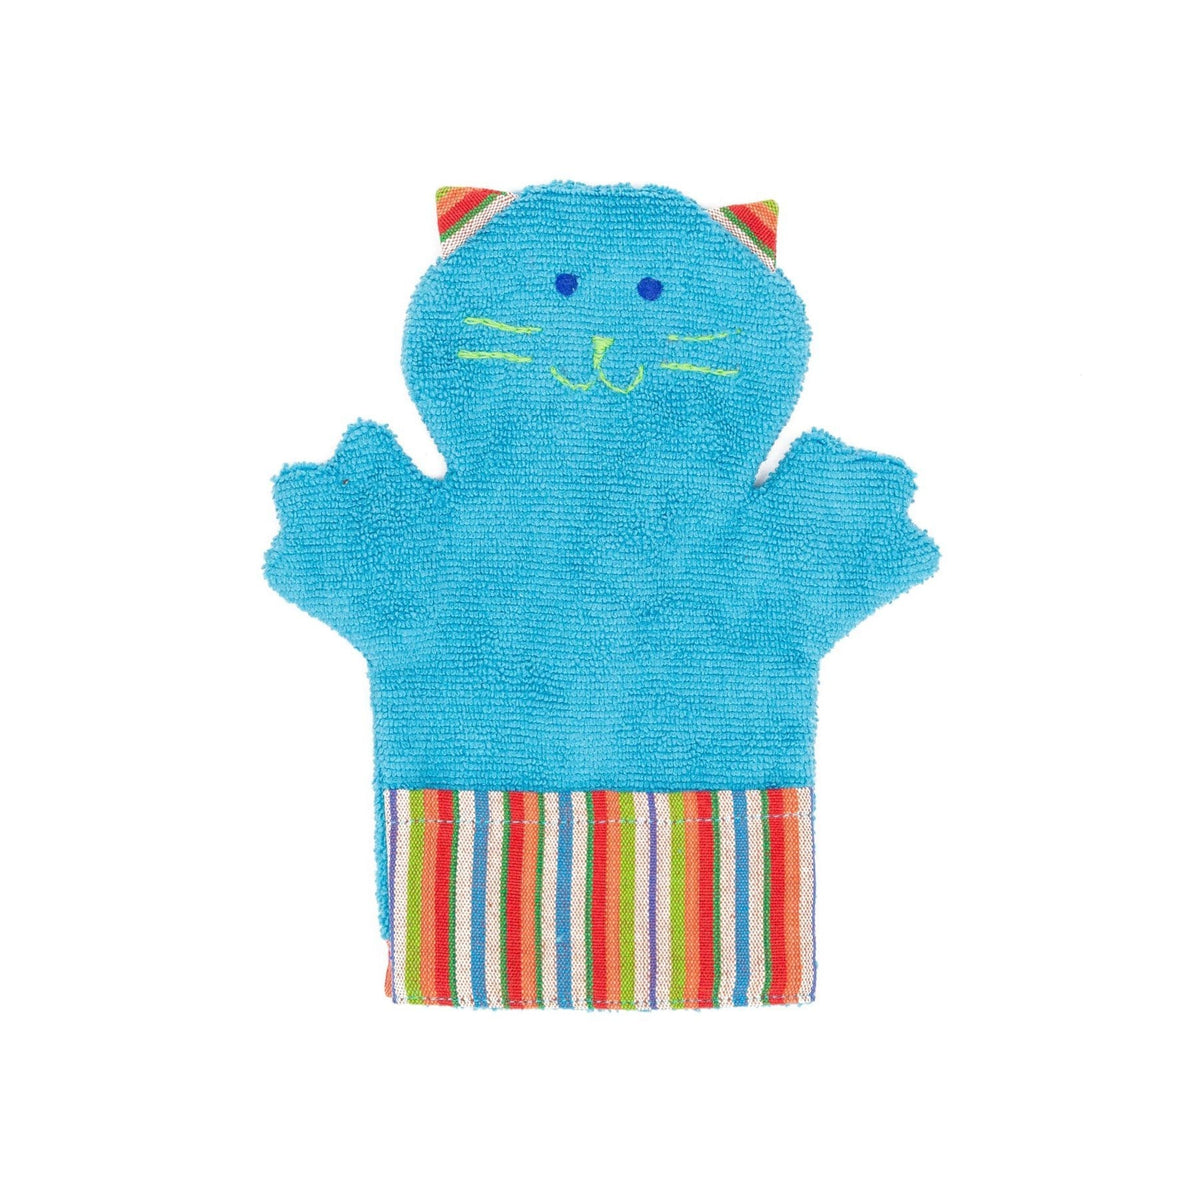 Fair Trade Puppet Washcloth Cat Turquoise ?id=13959054262325